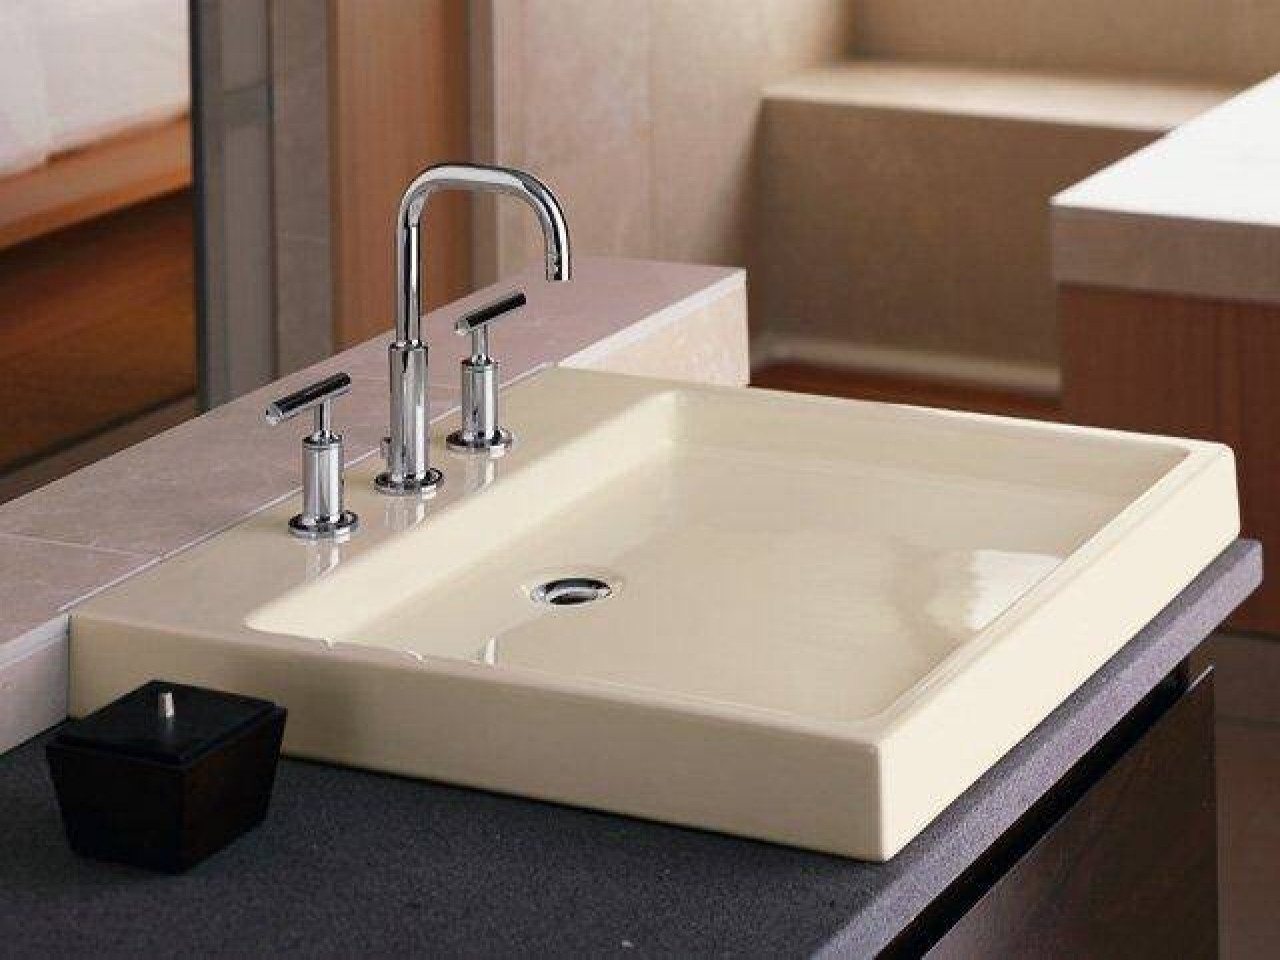 Best ideas about Top Mount Bathroom Sink . Save or Pin Kohler bathroom sink kohler vessel bathroom sinks kohler Now.